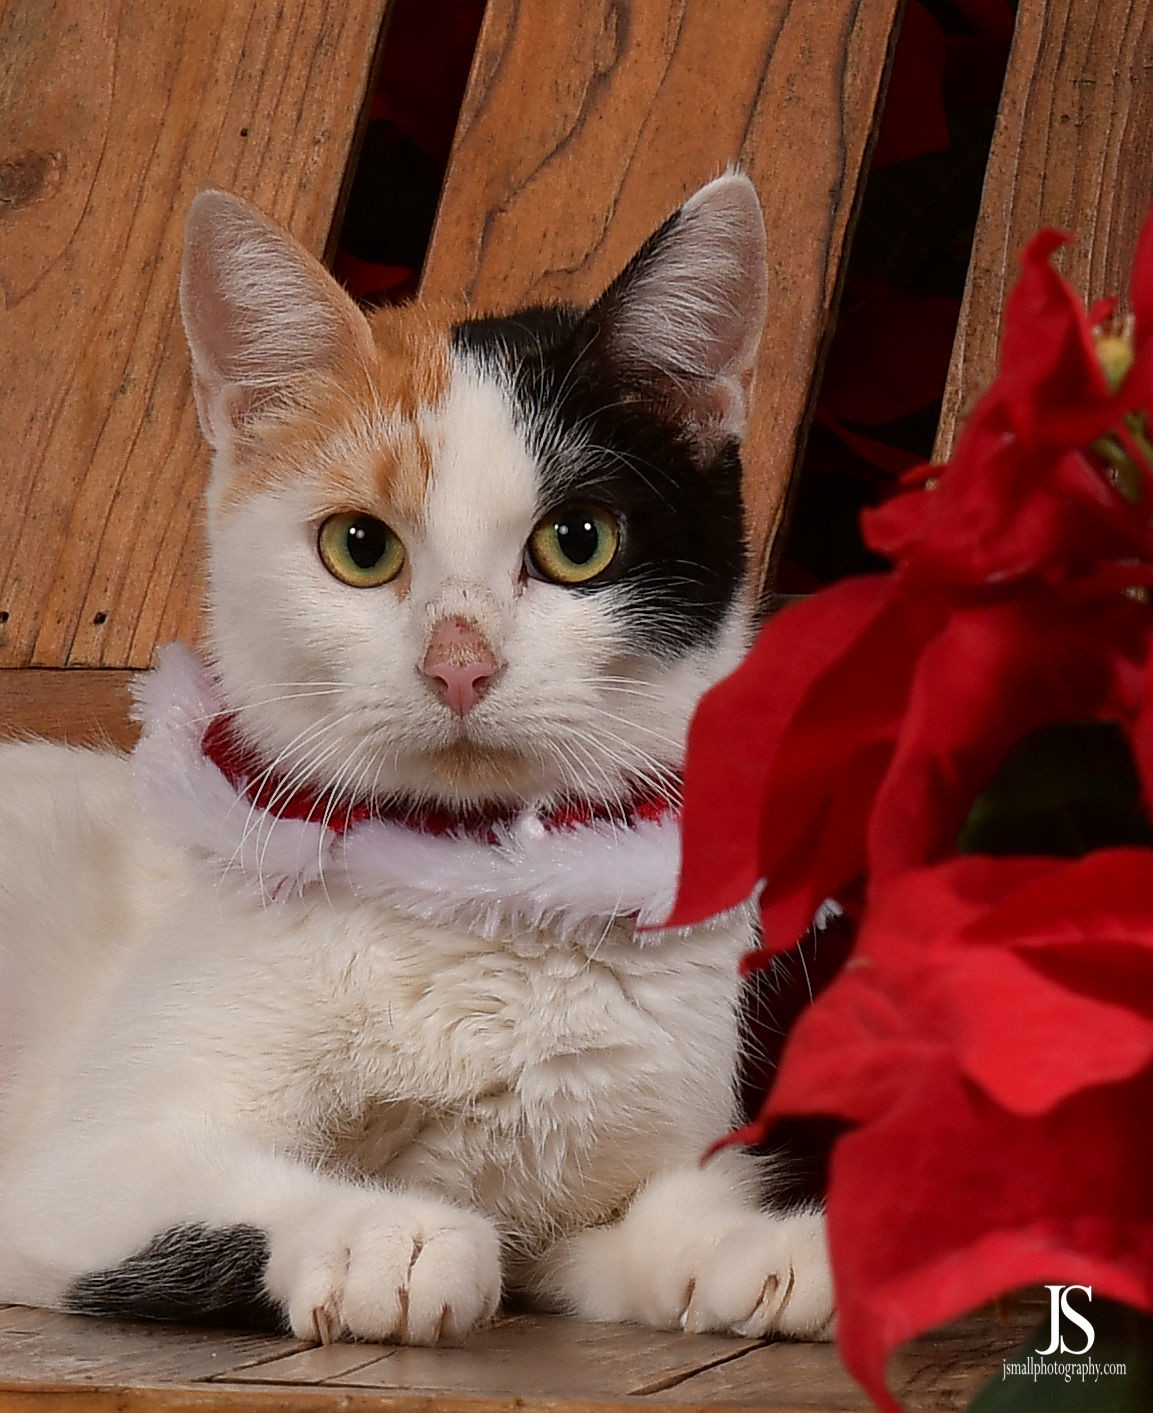 Sandy the cat hopes to go home this Christmas.